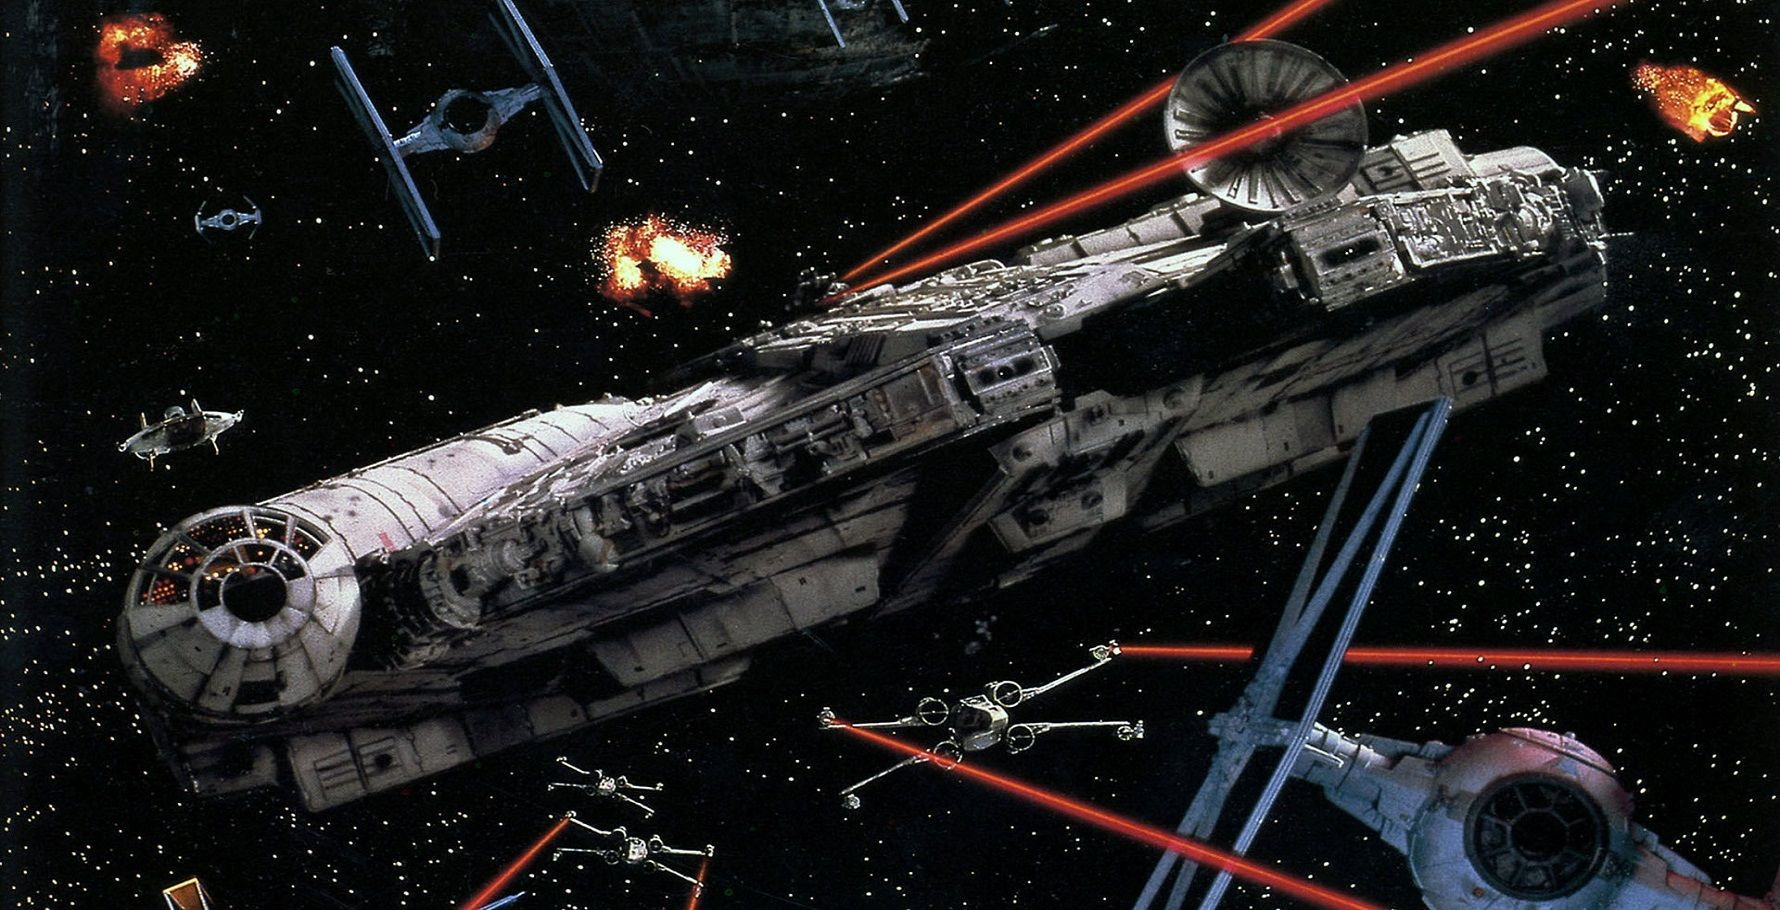 Star Wars: The 10 Most Feared Ships In The Galaxy, Ranked